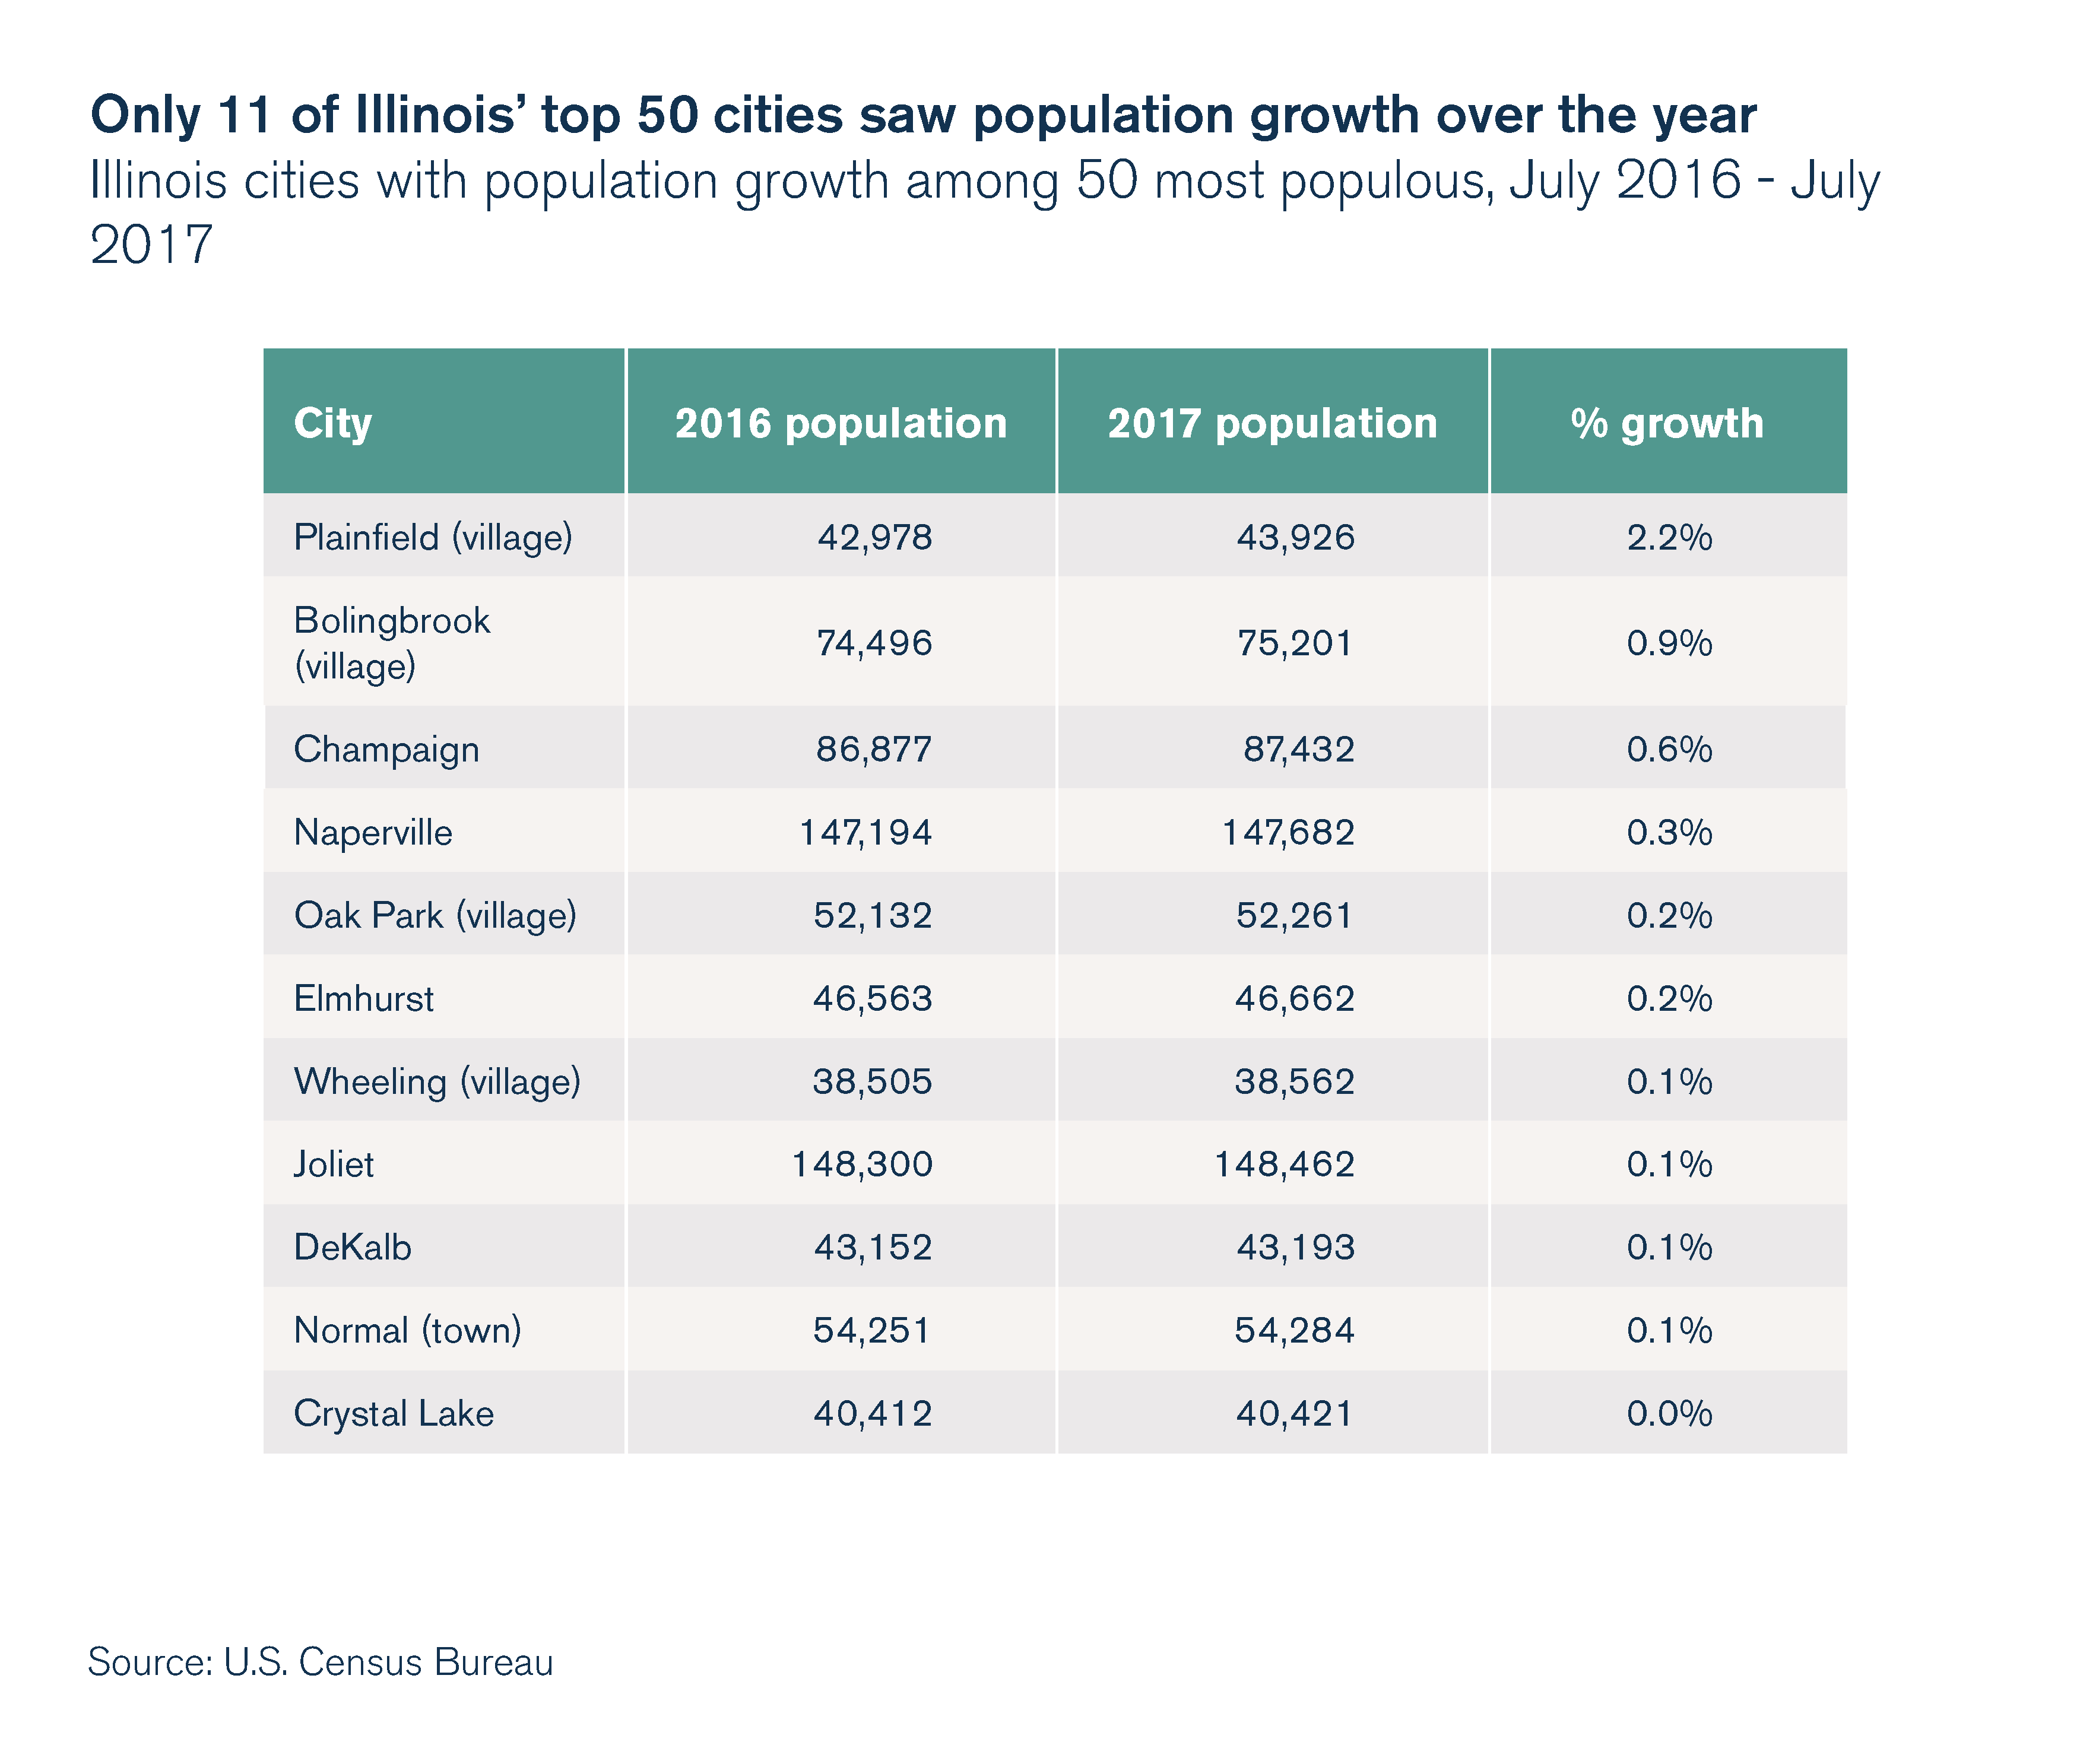 Only 11 of Illinois' top 50 cities saw population growth over the year